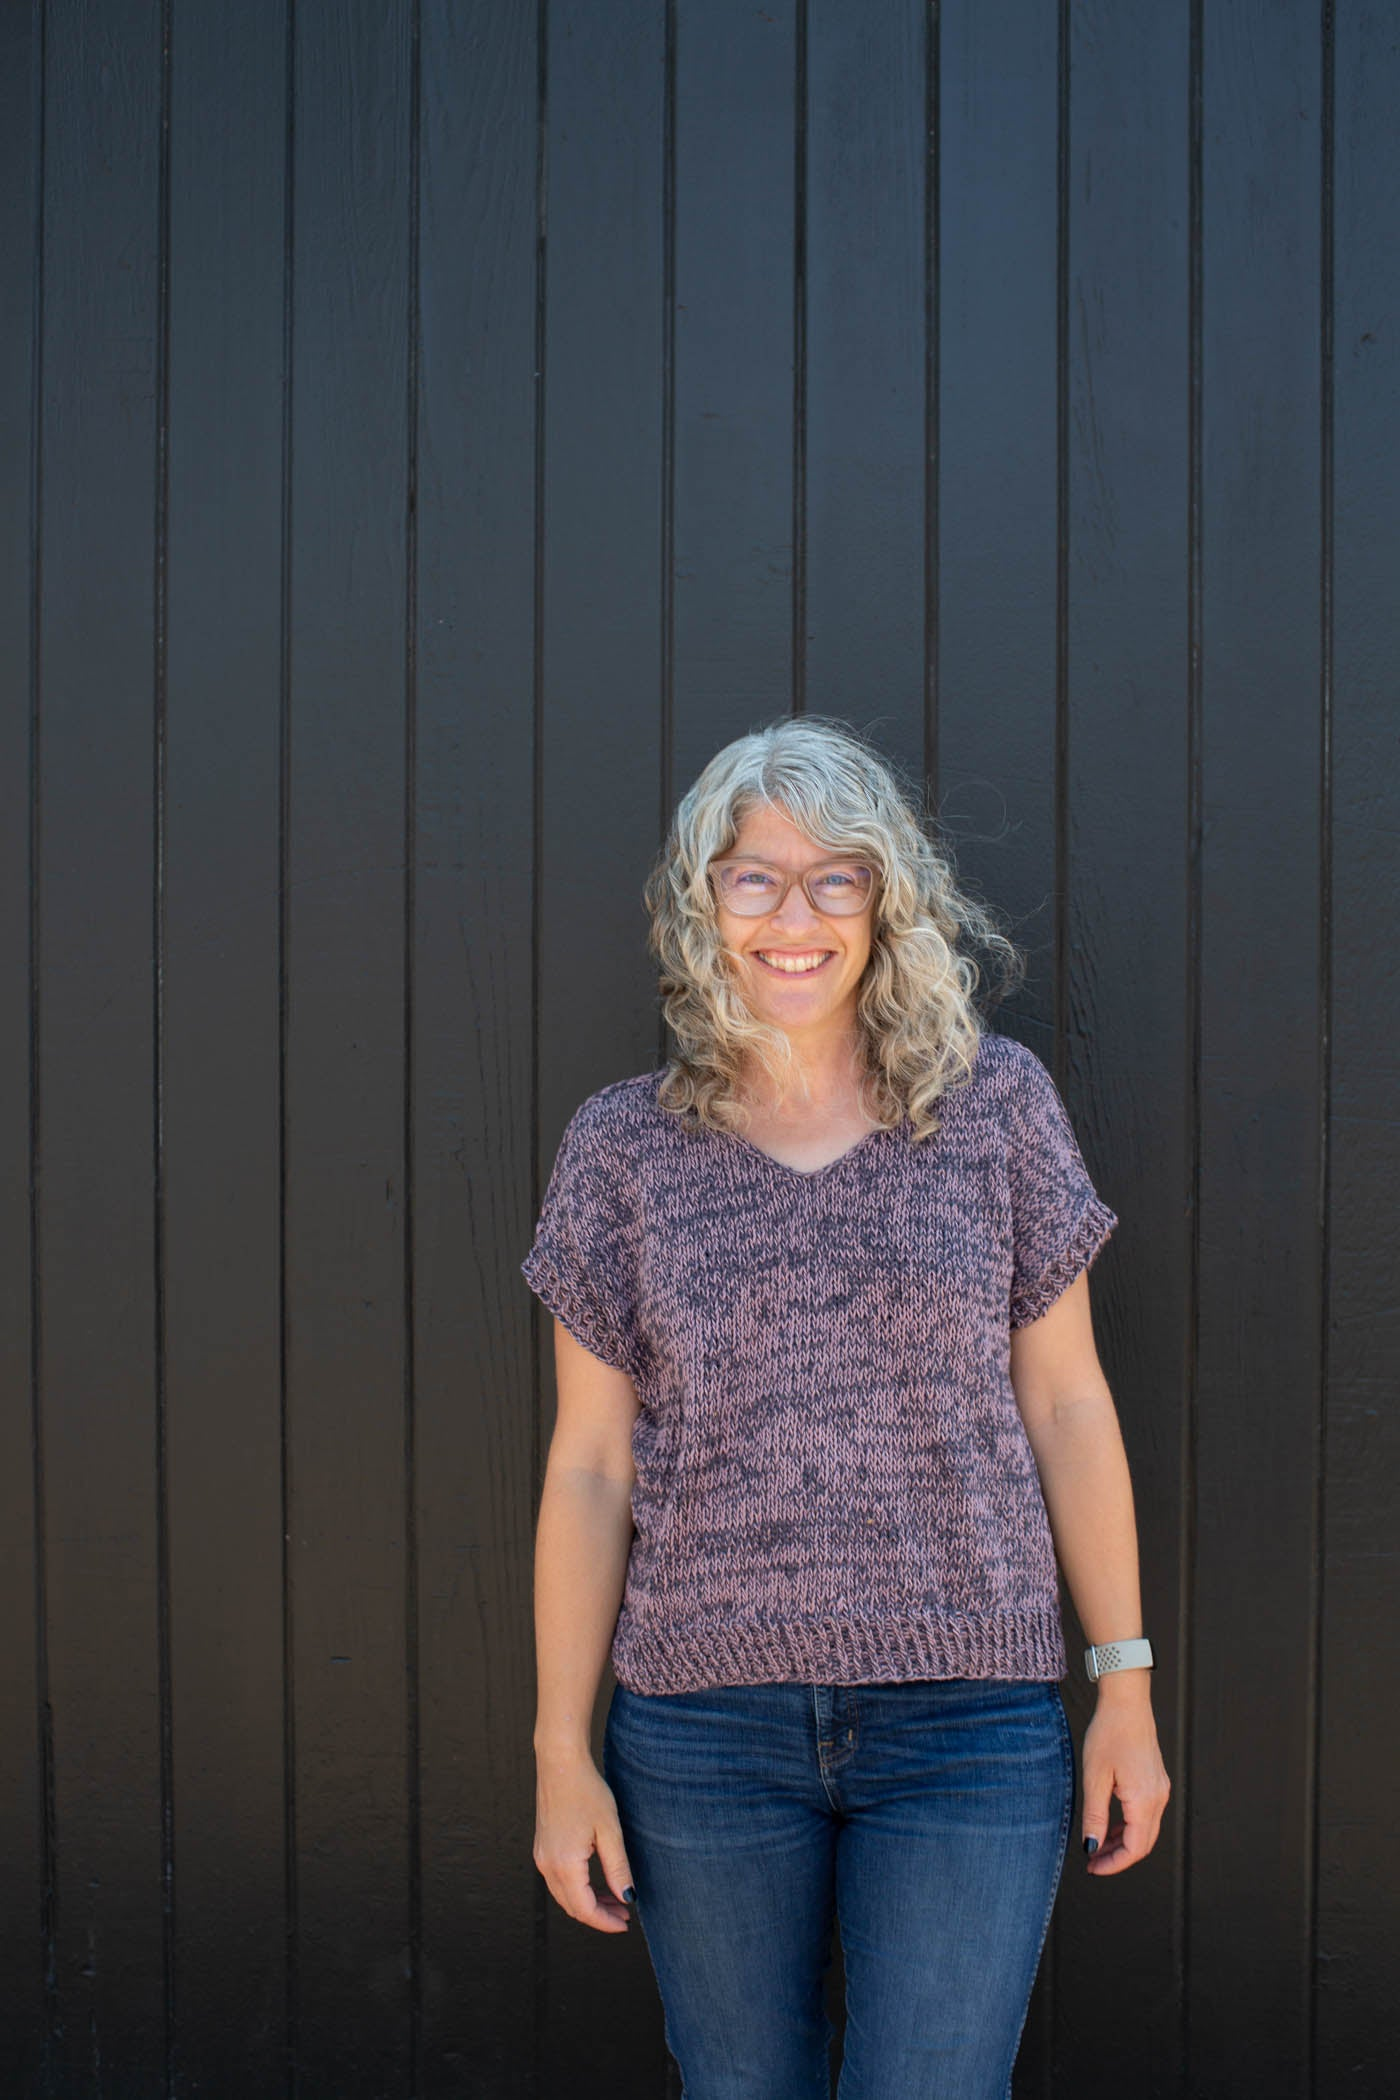 Jaime standing in front of a black wall, standing straight in front of the camera smiling.  Jaime is wearing a knitted Rift Tee in slate gray and mauve and blue jeans.